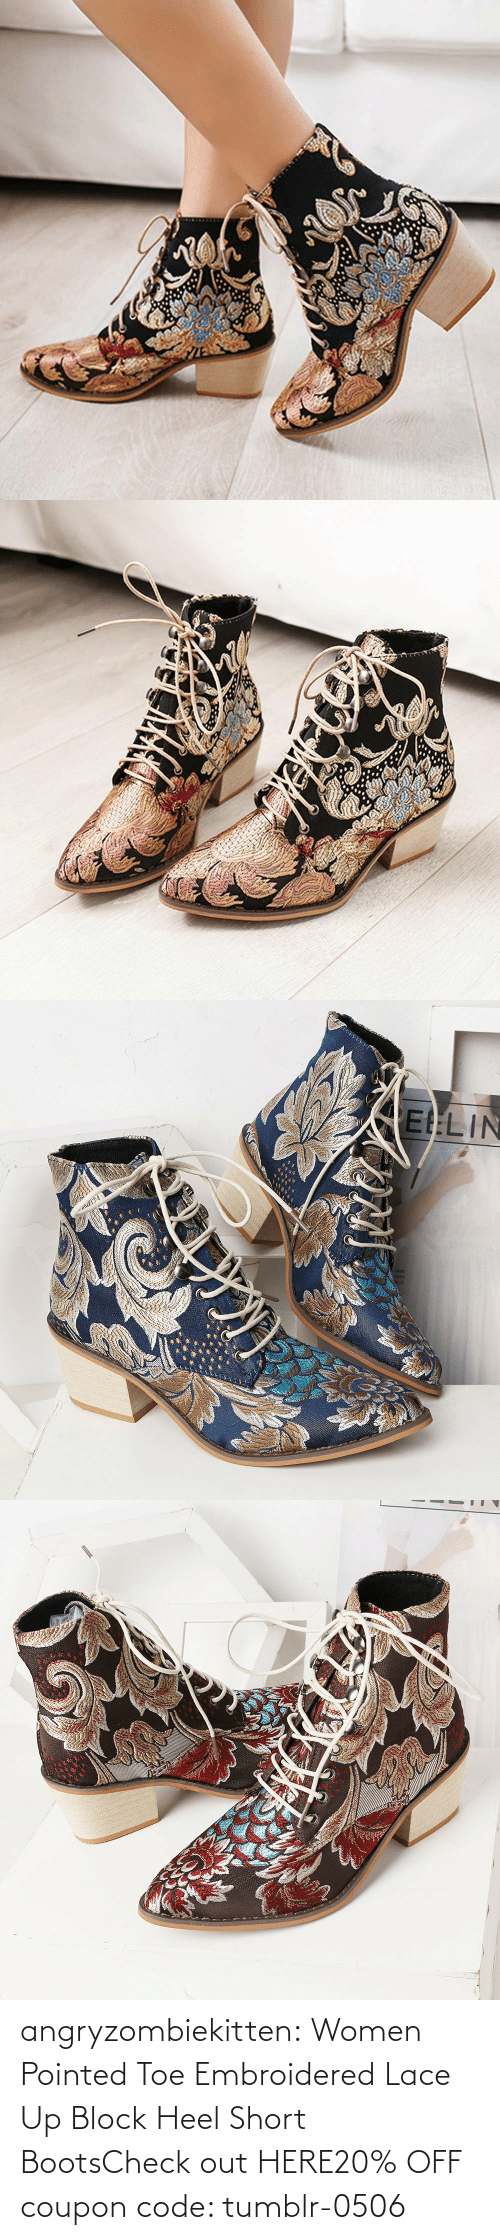 Check Out: angryzombiekitten:  Women Pointed Toe Embroidered Lace Up Block Heel Short BootsCheck out HERE20% OFF coupon code: tumblr-0506